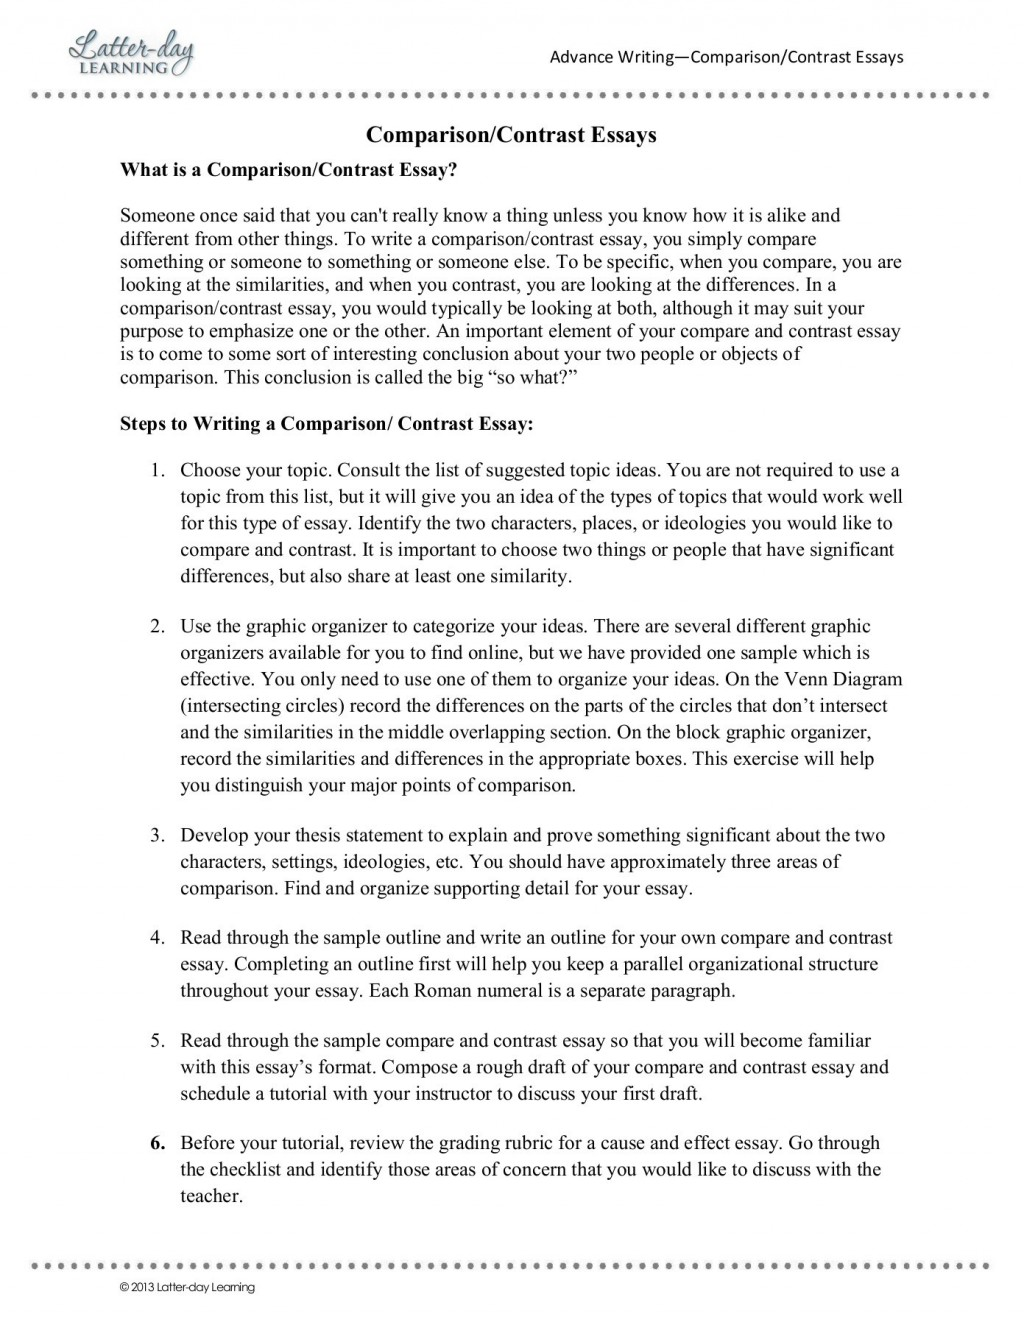 010 Essay Example What Is Compare And Contrast Striking A Does Comparison/contrast Look Like Should Provide Good Topic Sentence For Large